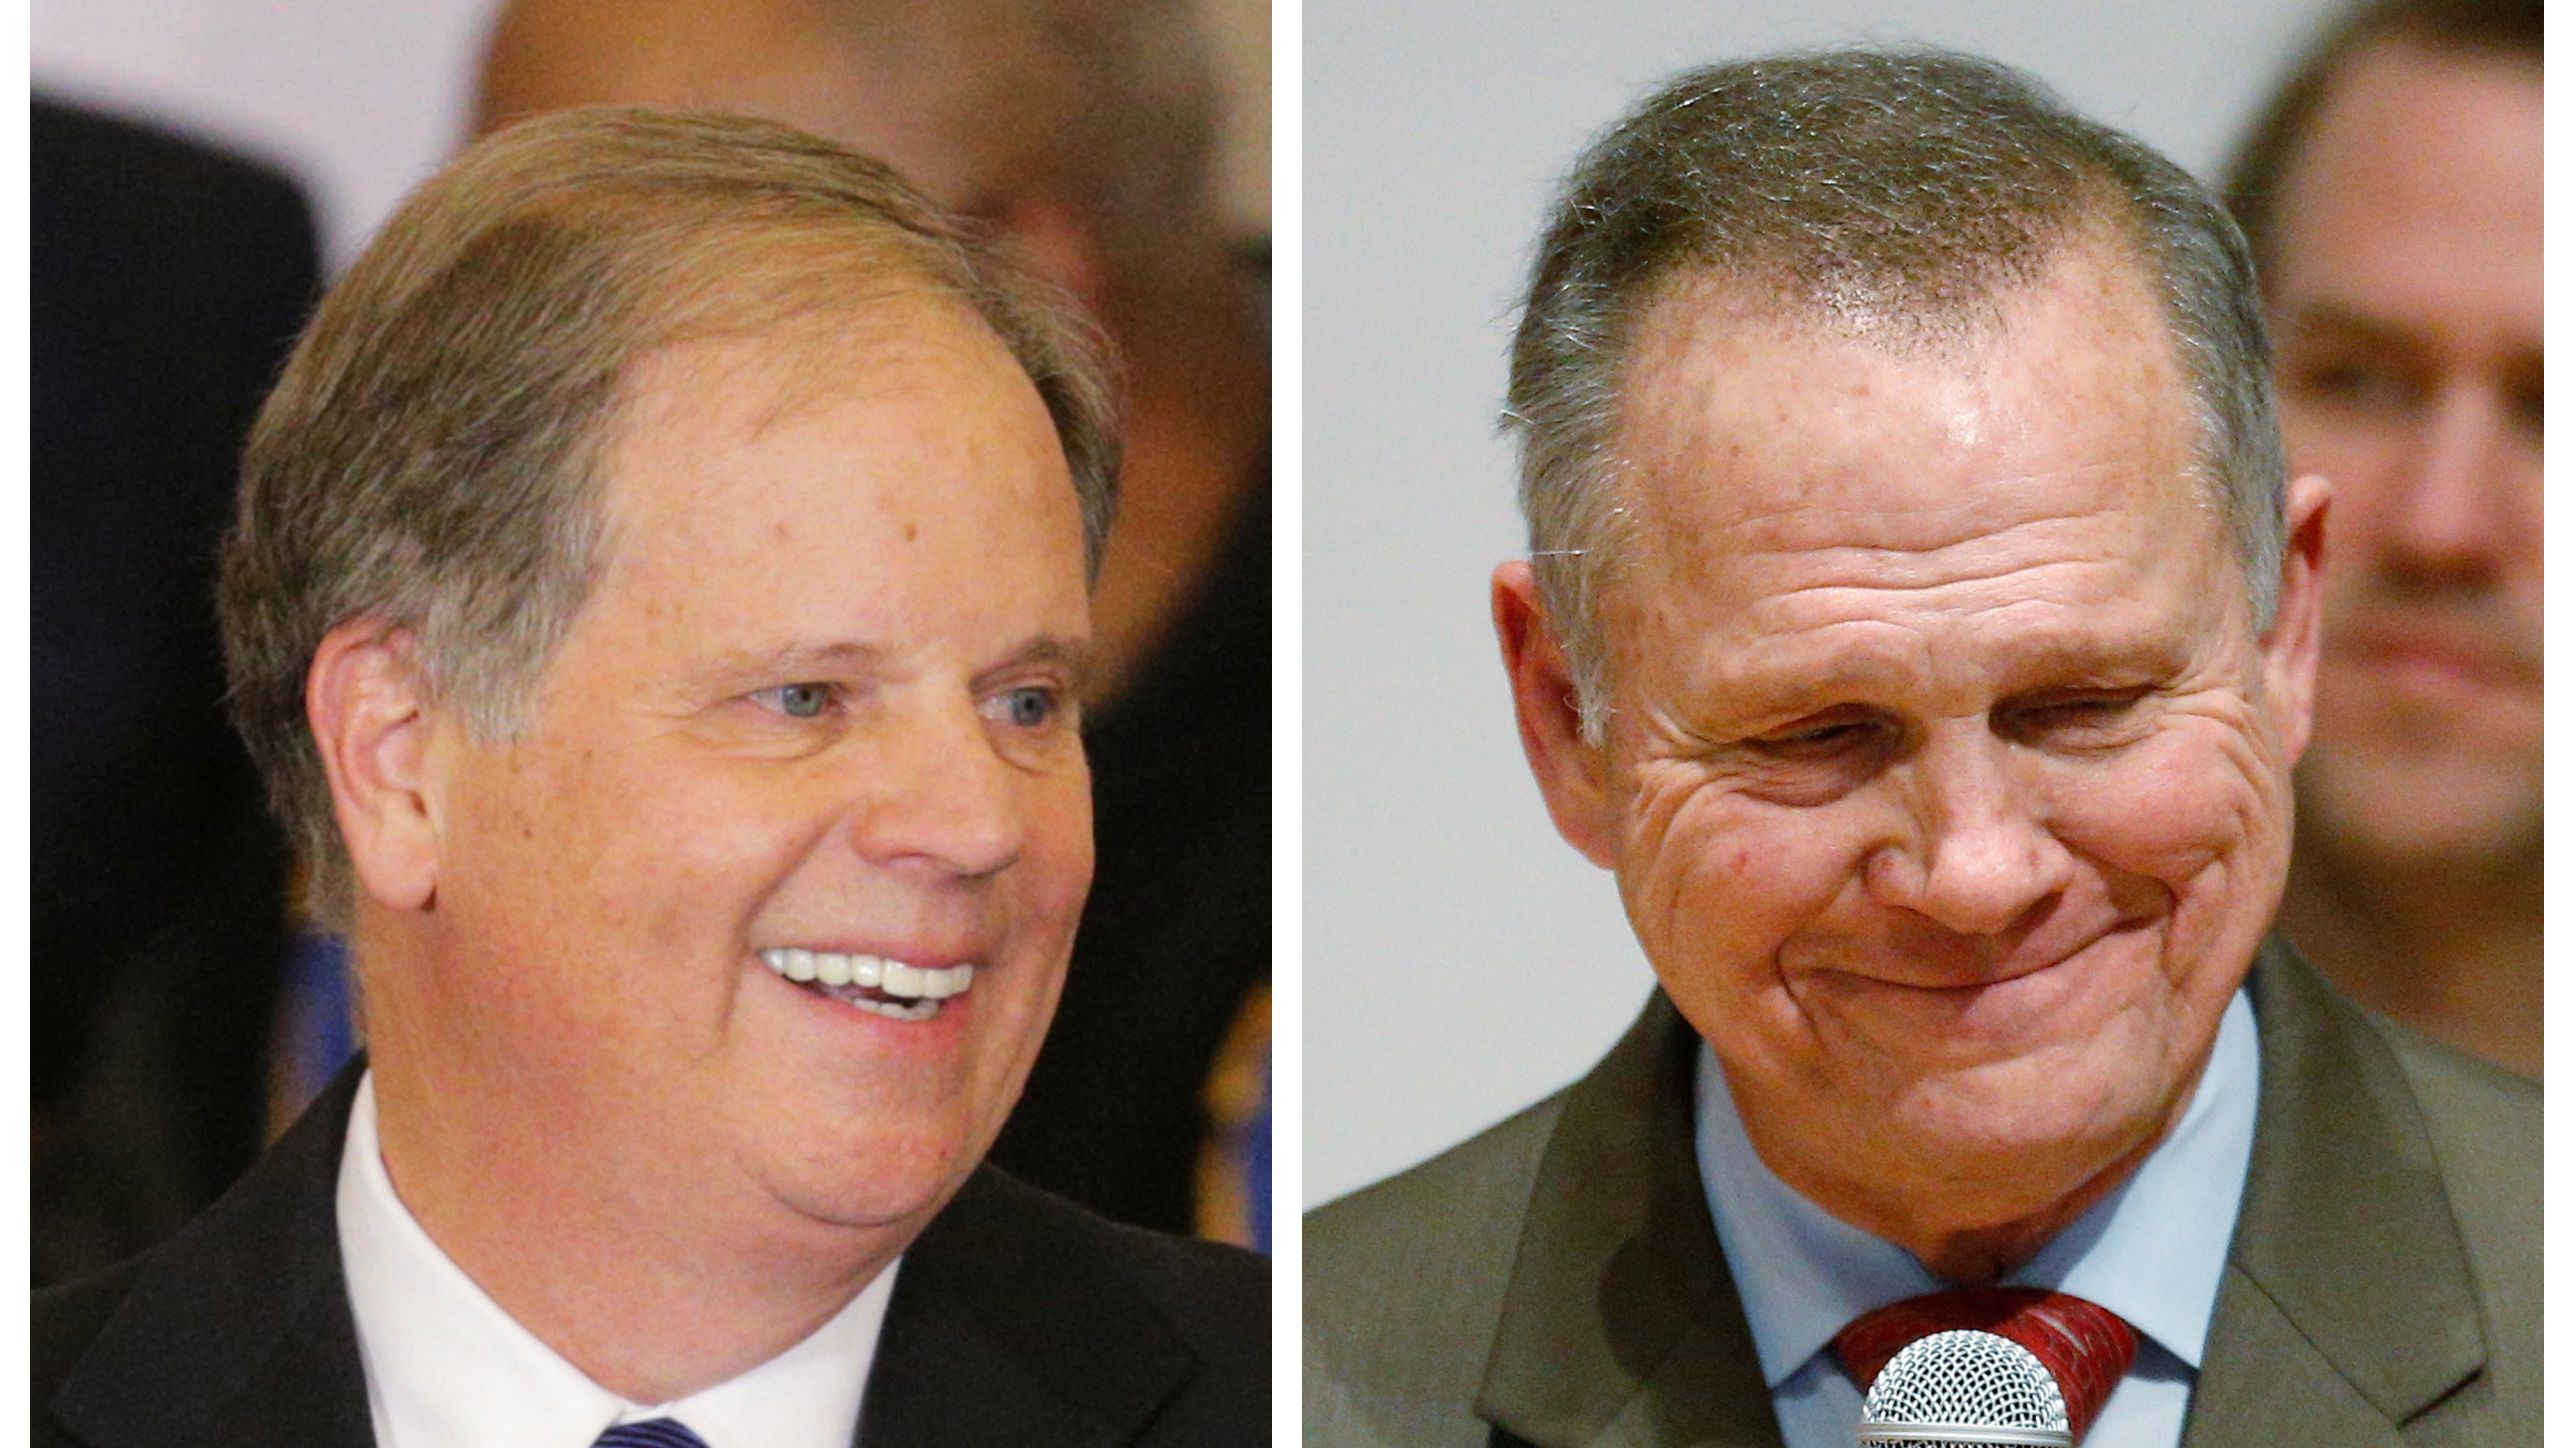 Doug Jones beat Roy Moore by a mere 1.5 percentage points in a state that hasn't elected a Democrat to the US senate since 1992.